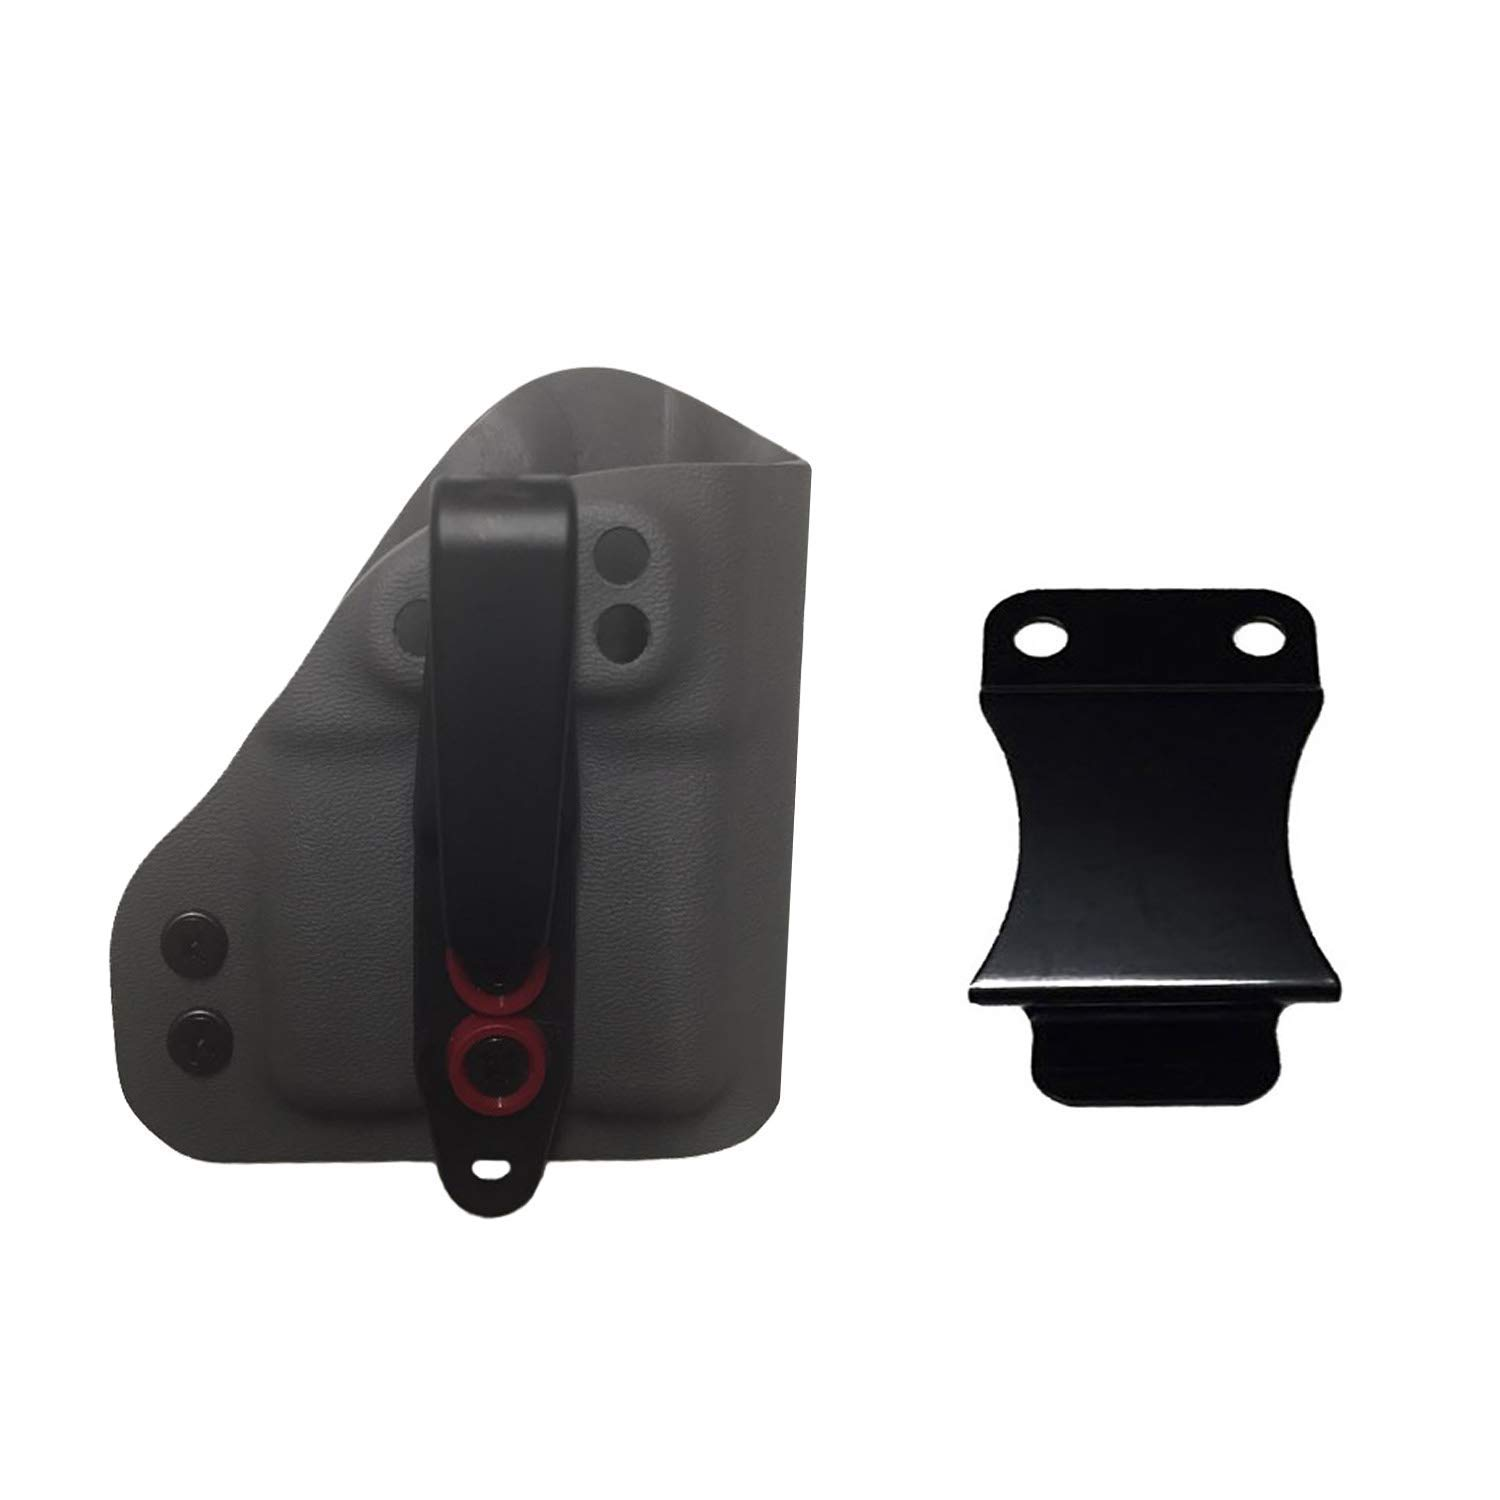 Elite Force Holsters Limited time sale Custom Holster fits 2 Pepper Blaster Kimber Low price